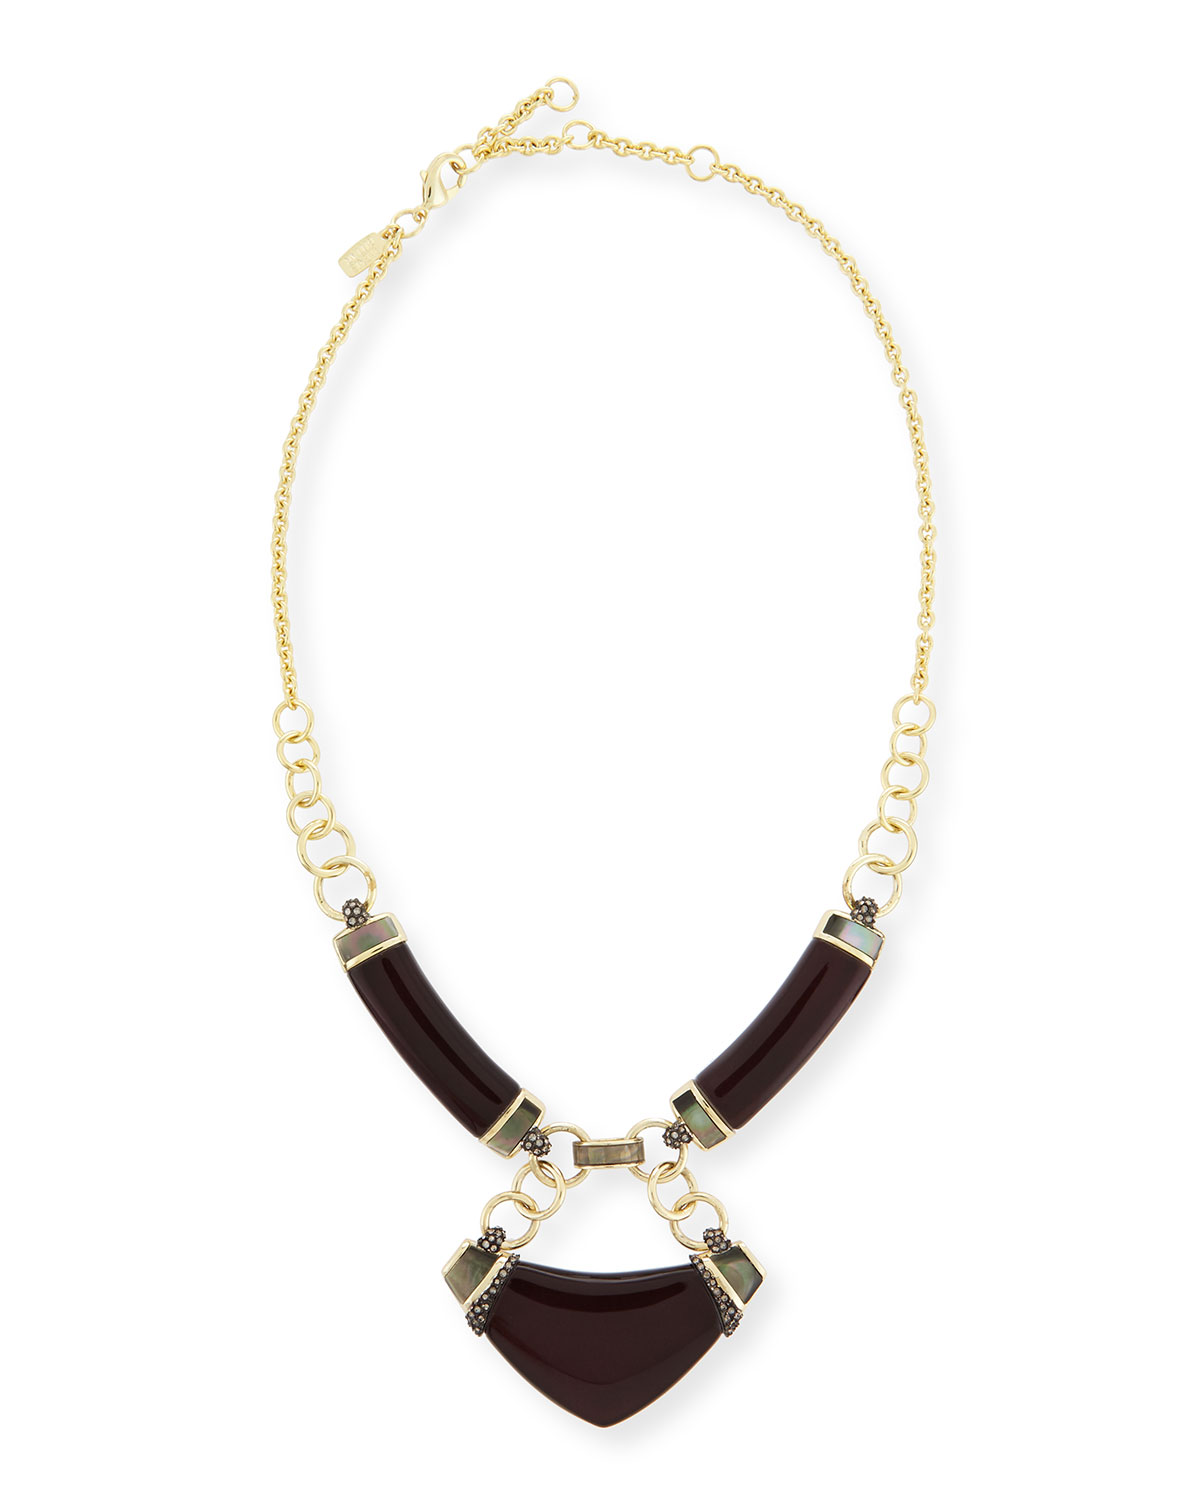 Lucite Linked Corset Bib Necklace, Black Cherry - Alexis Bittar